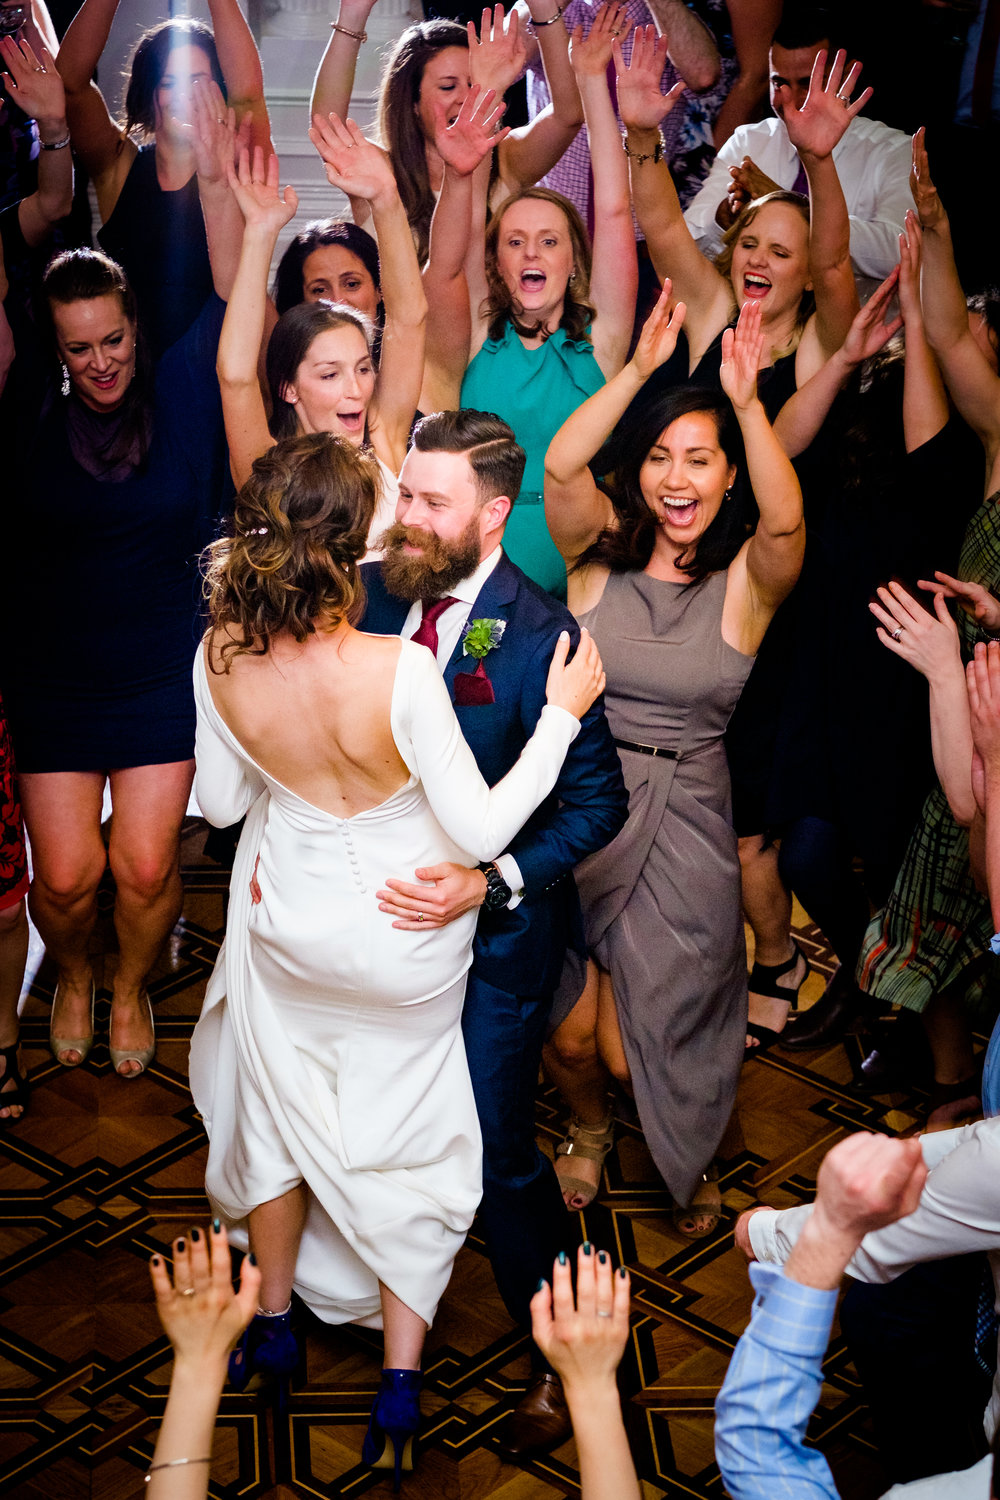 Erinn+Michael_Reception-169.jpg